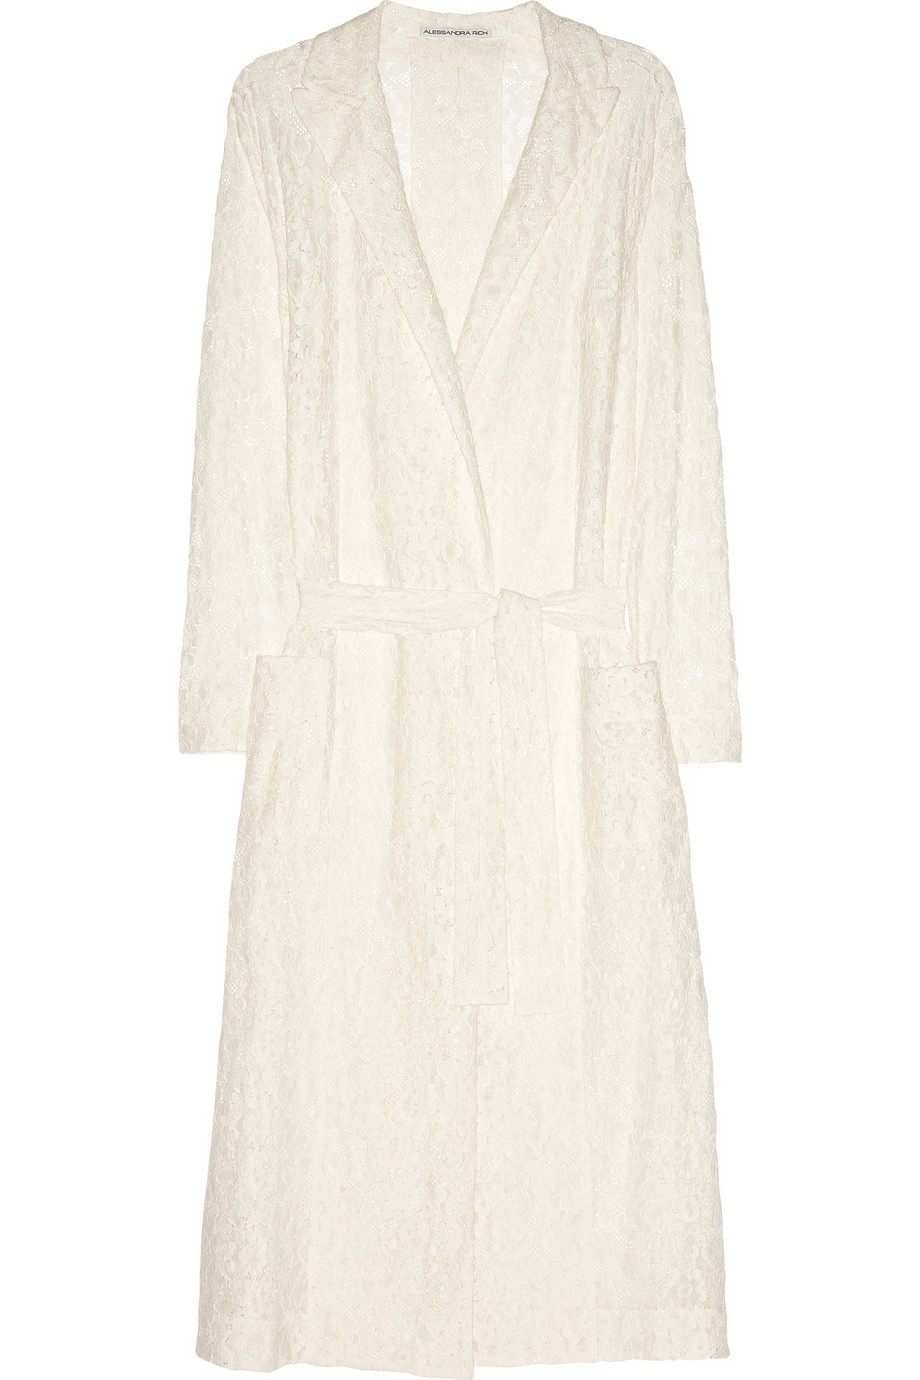 Belted cotton-lace trench coat | Alessandra Rich | THE OUTNET